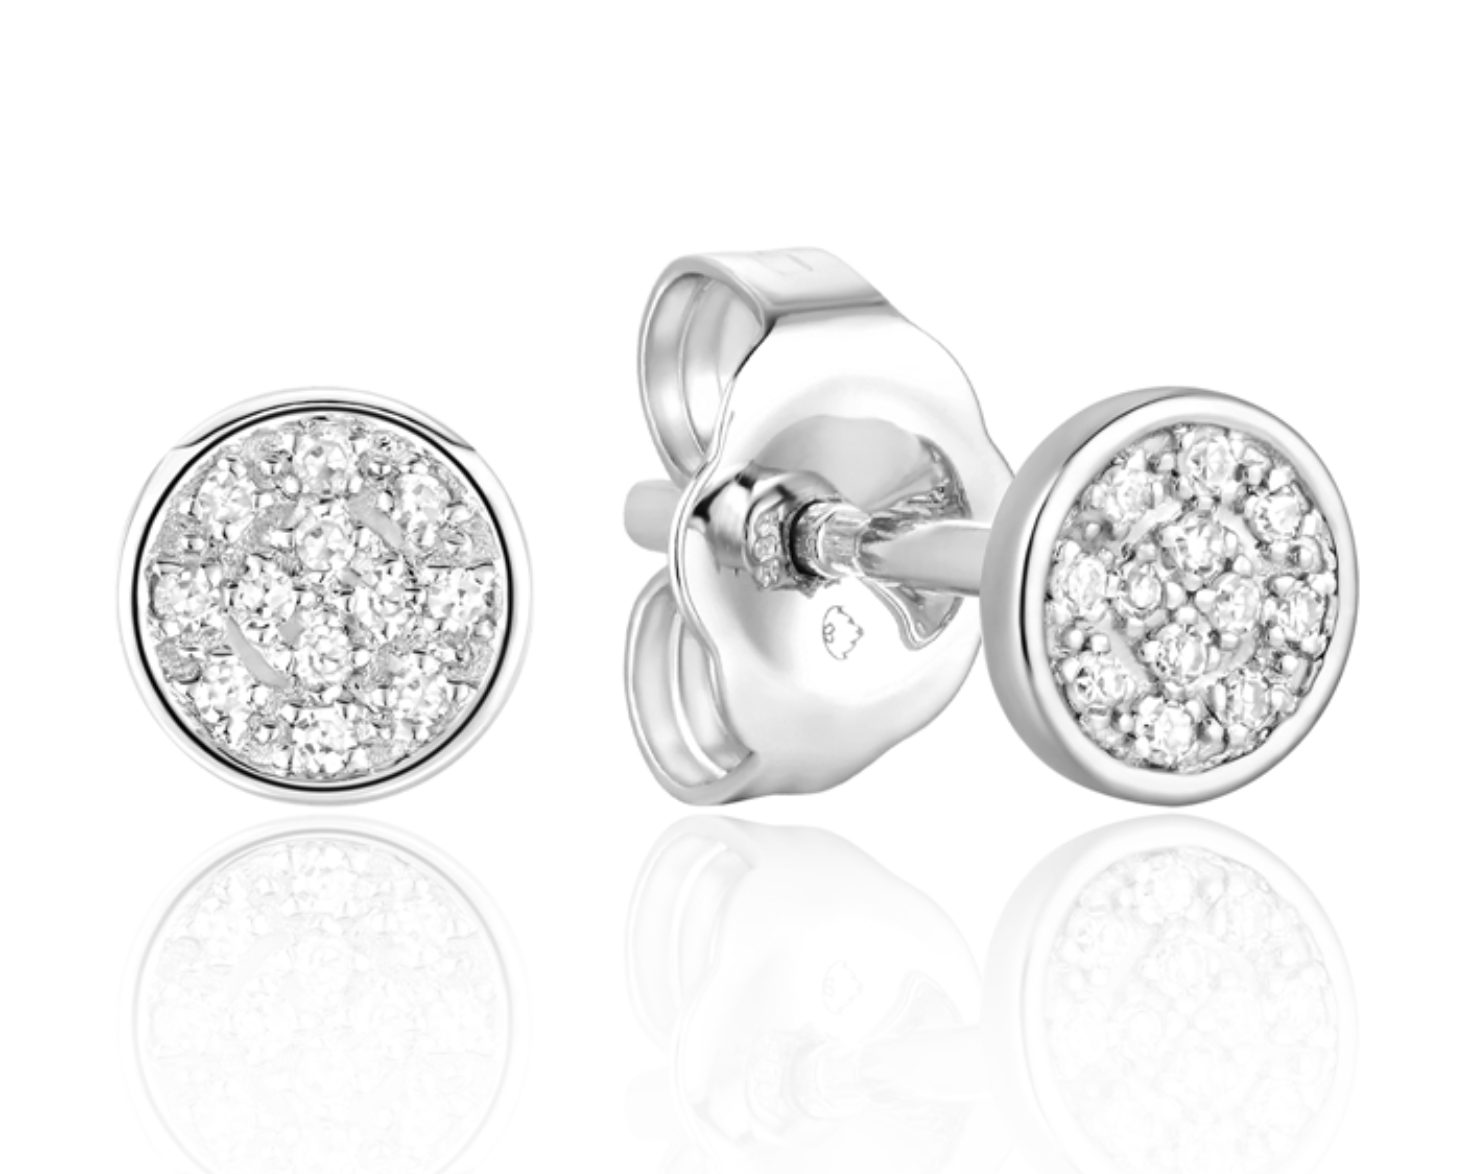 Luvente White Gold Mini Pave Disc Earring